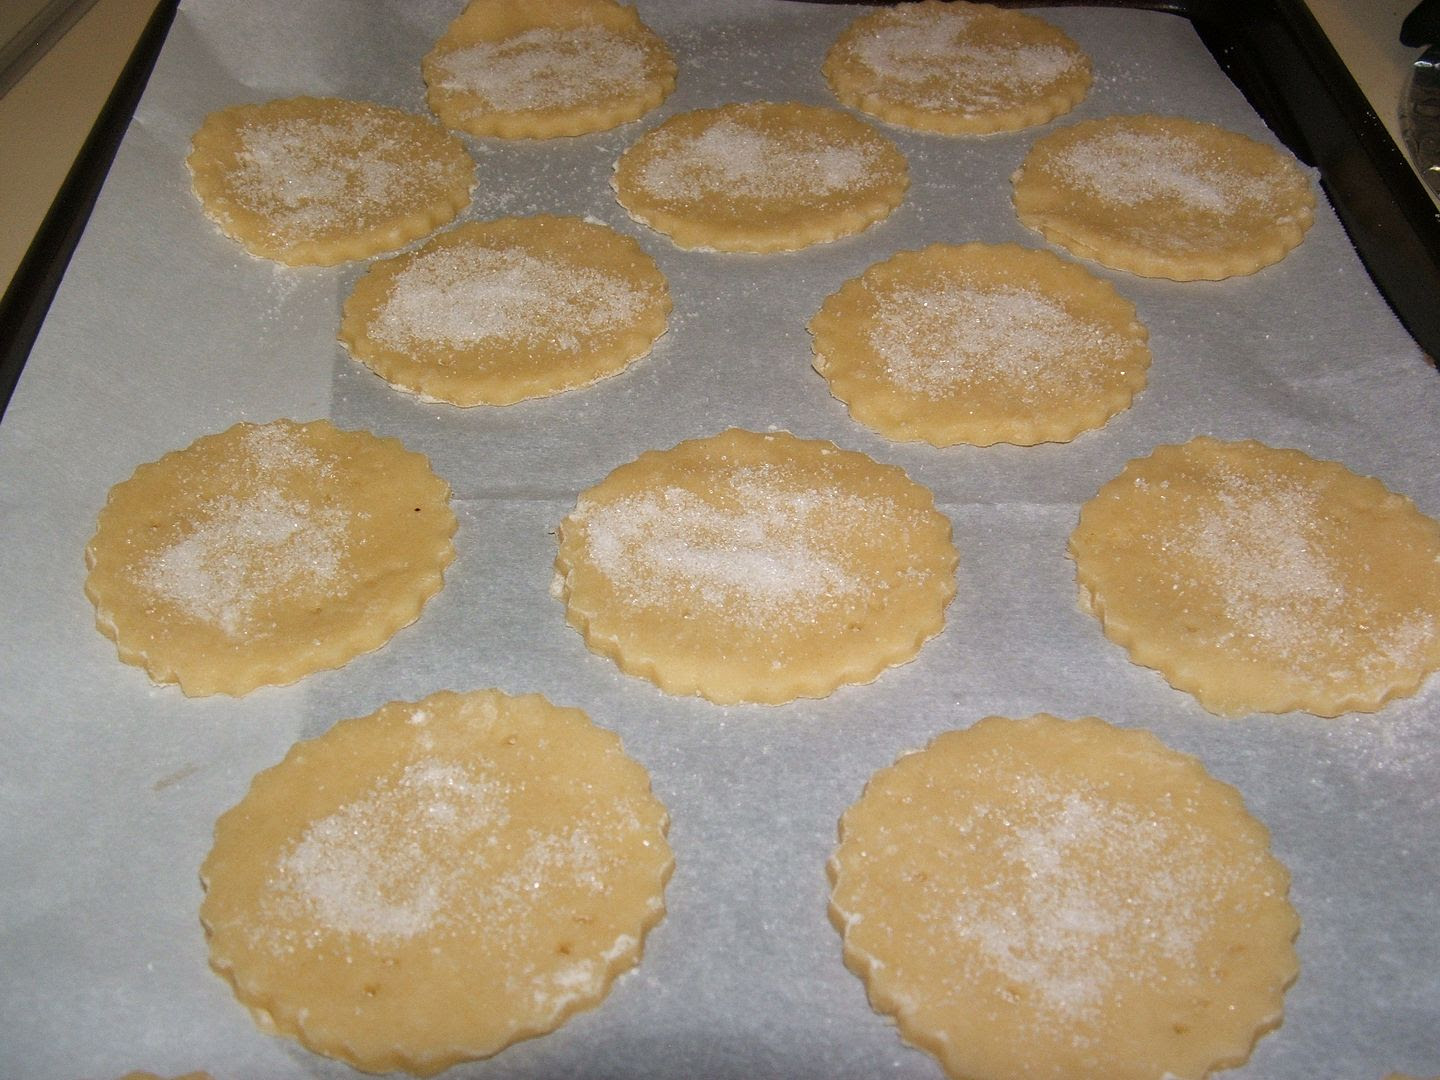 Grape Cookies by Angie Ouellette-Tower for godsgrowinggarden.com photo 004_zps844a40f4.jpg